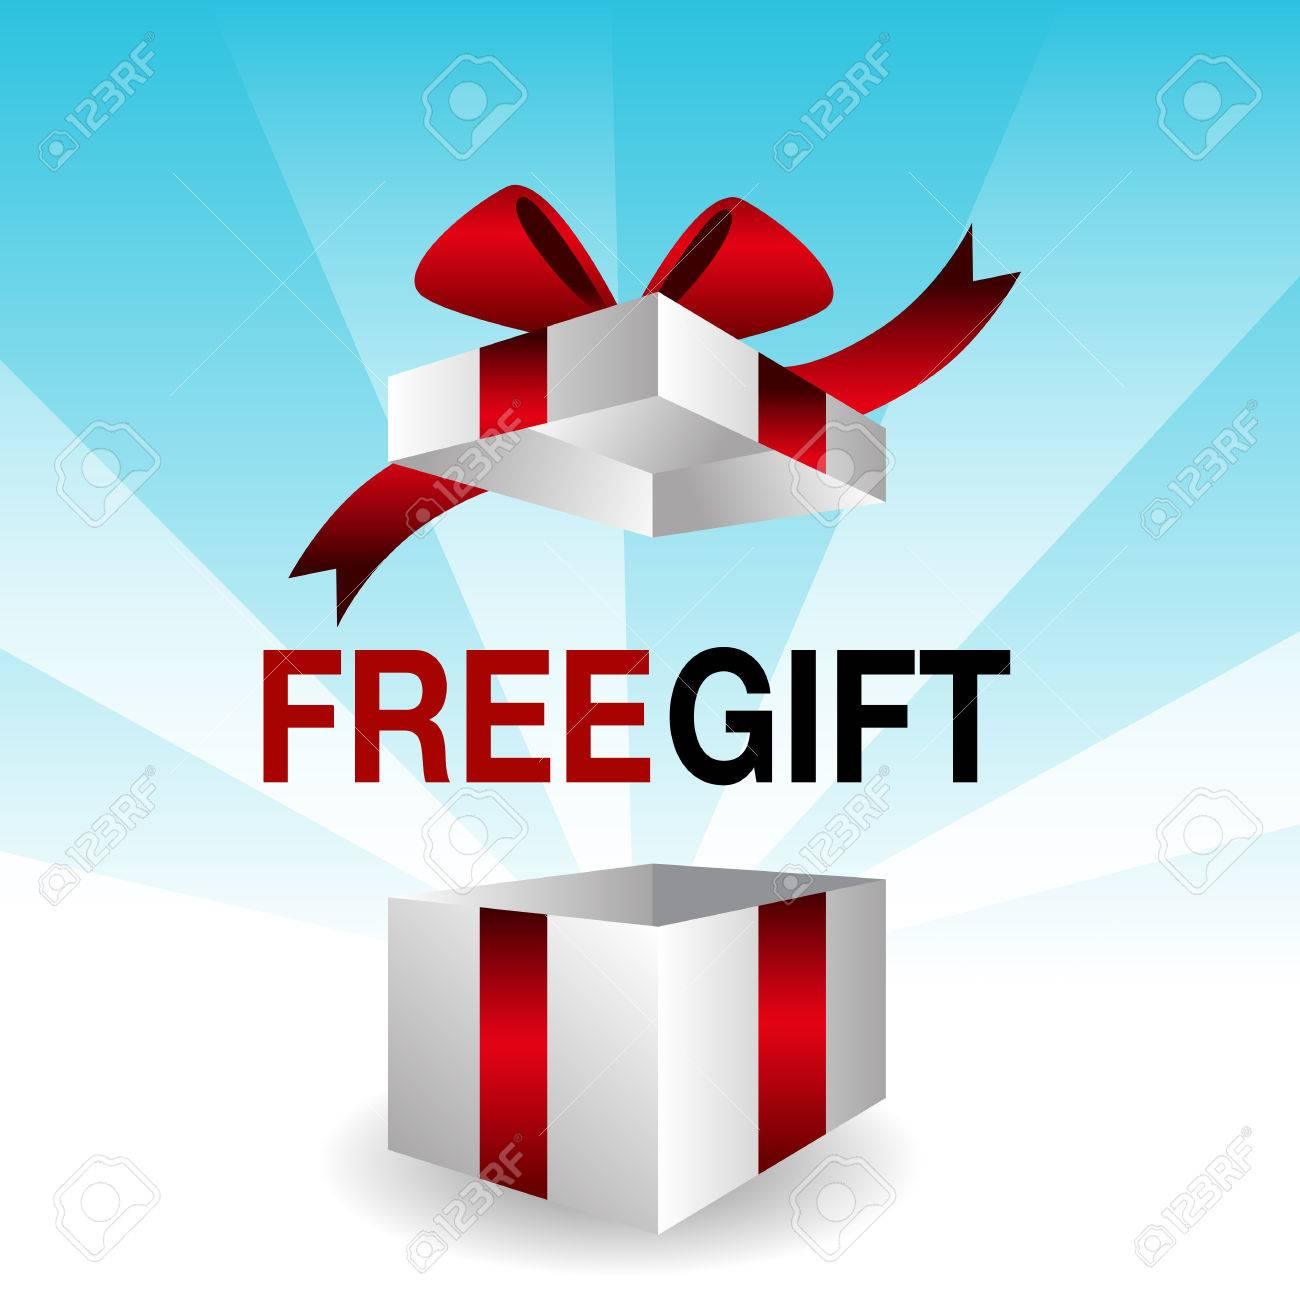 FREE GIFT WITH ALL ORDERS!